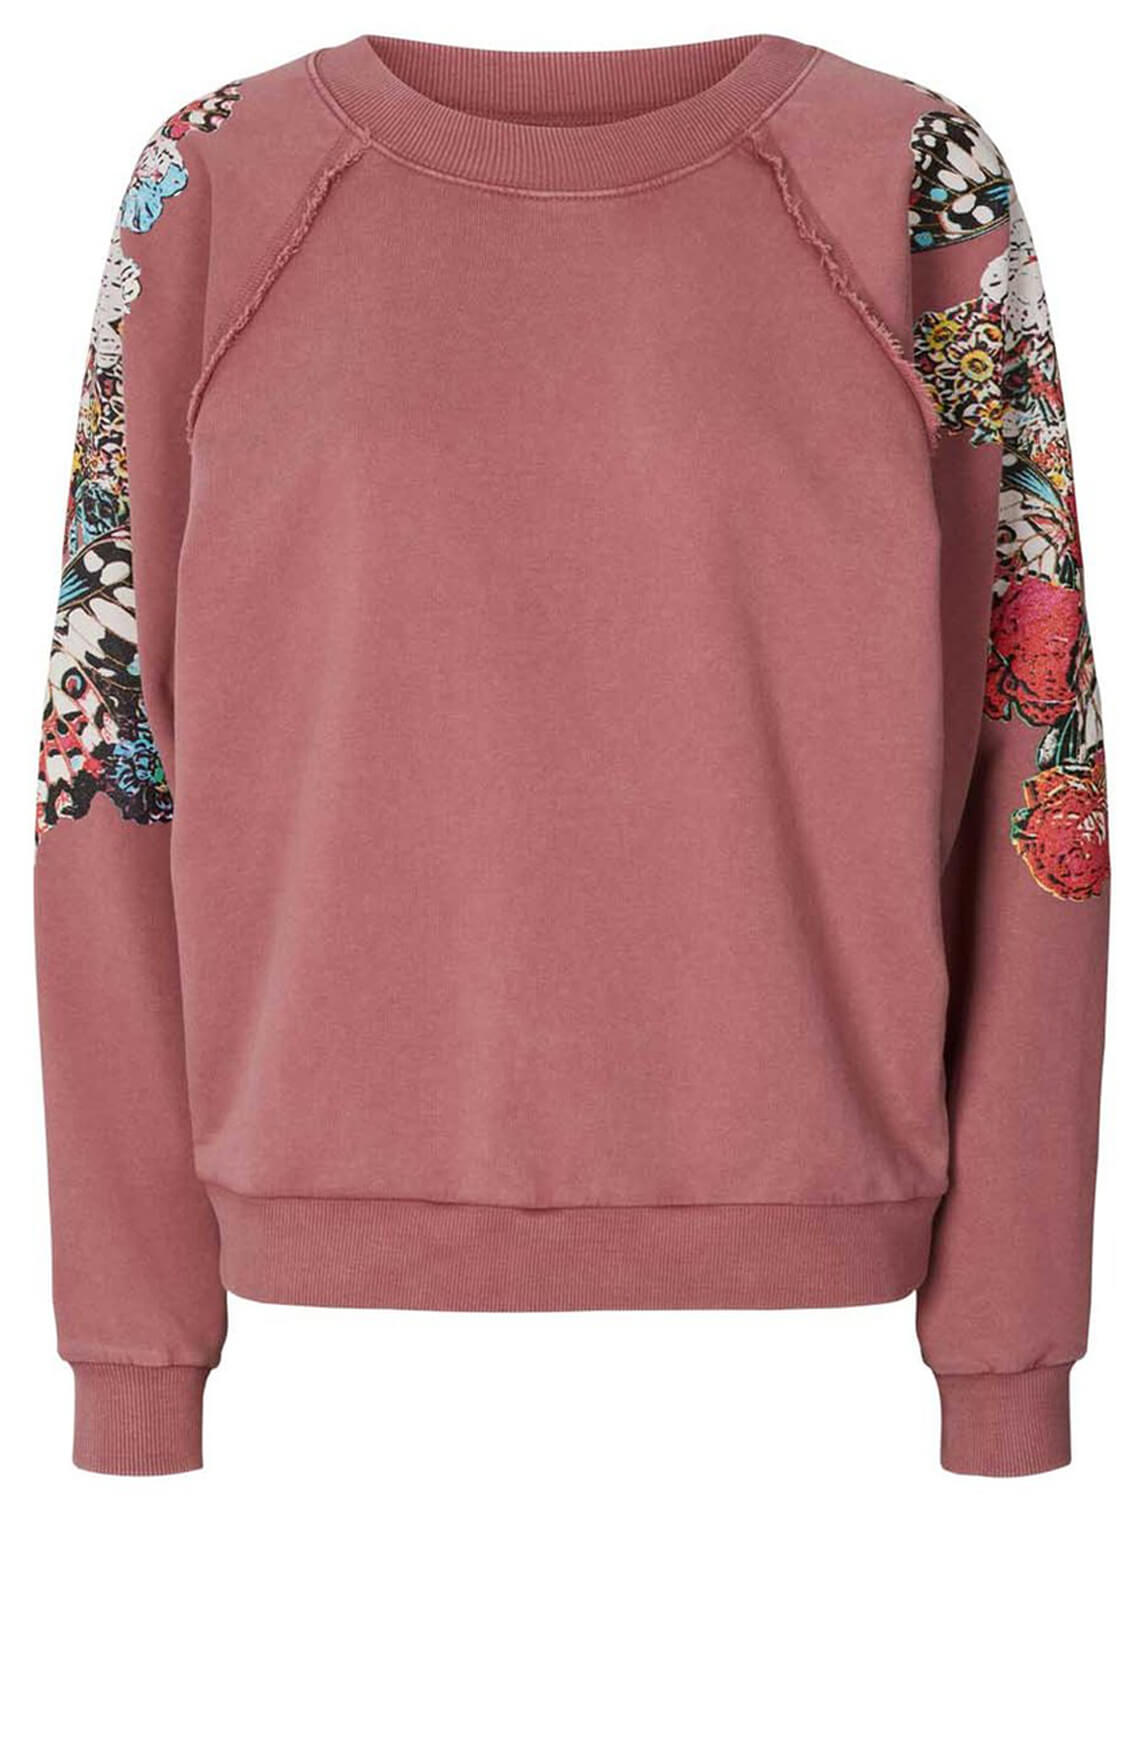 Lollys Laundry Dames Tate sweater roze